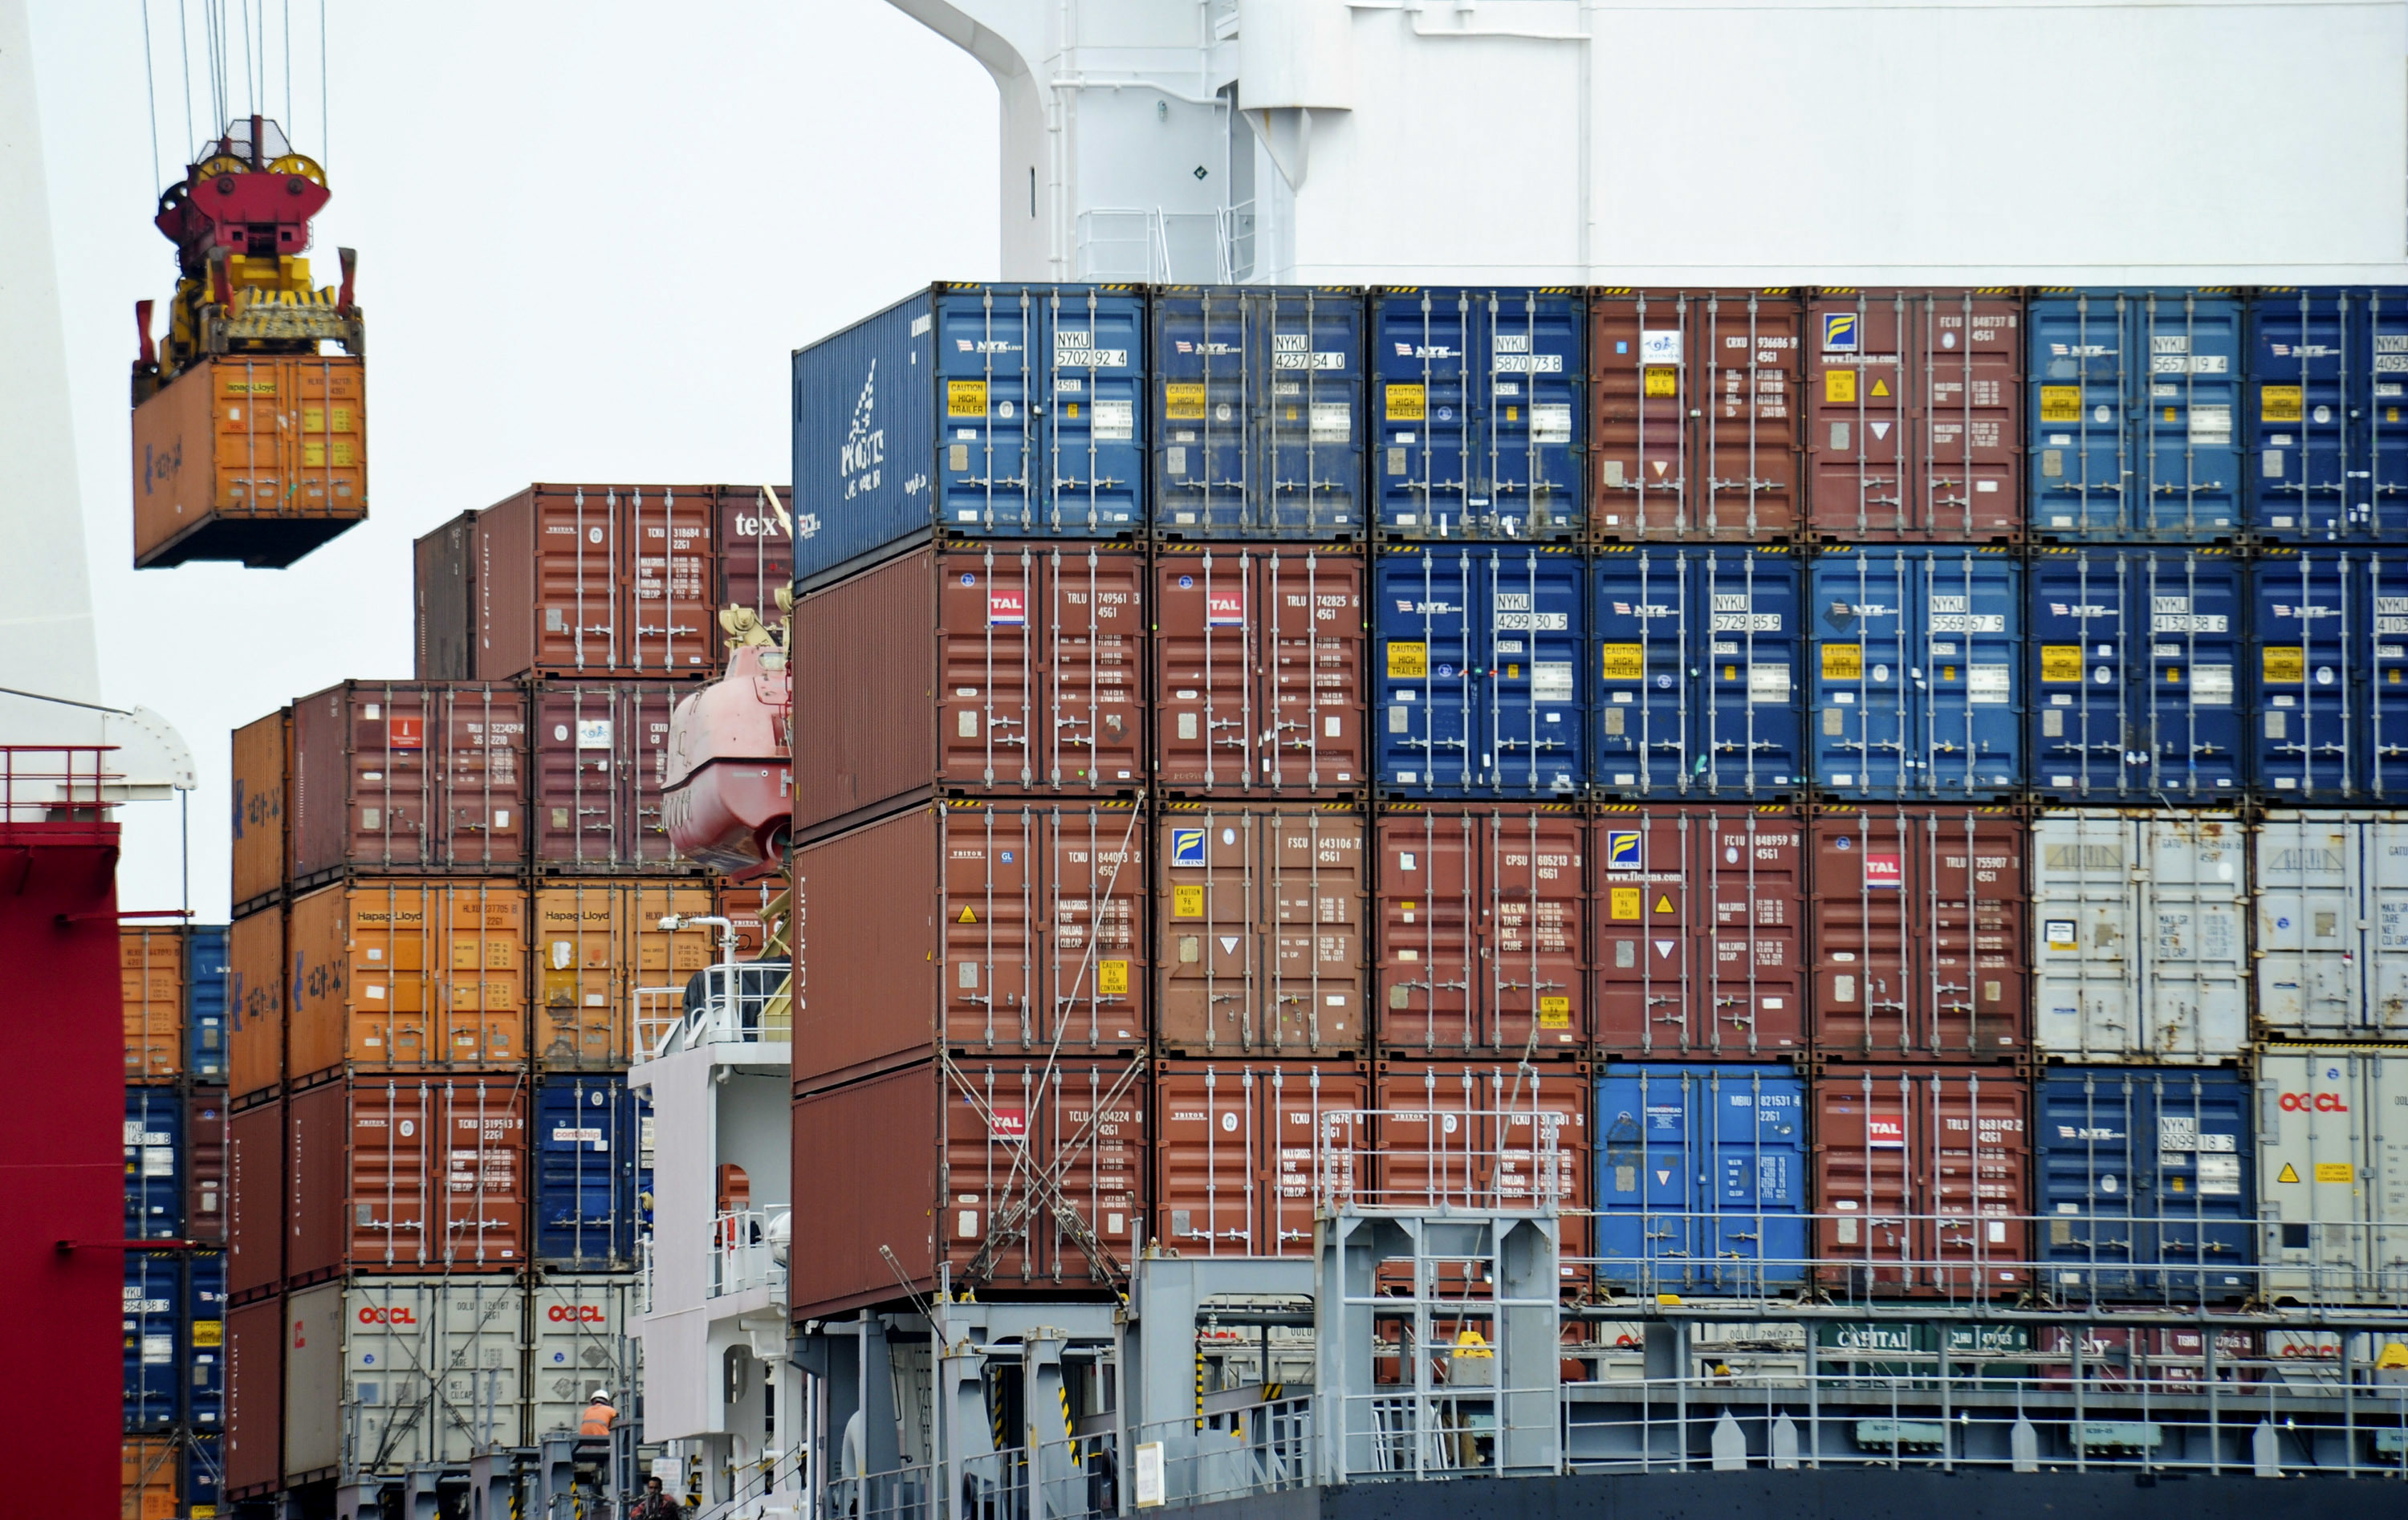 FILE- A container is loaded onto a cargo ship at the Tianjin port in China, Aug. 5, 2010. With the apparent death of the Trans-Pacific Partnership, China sees a chance at forming its own Pacific free trade area